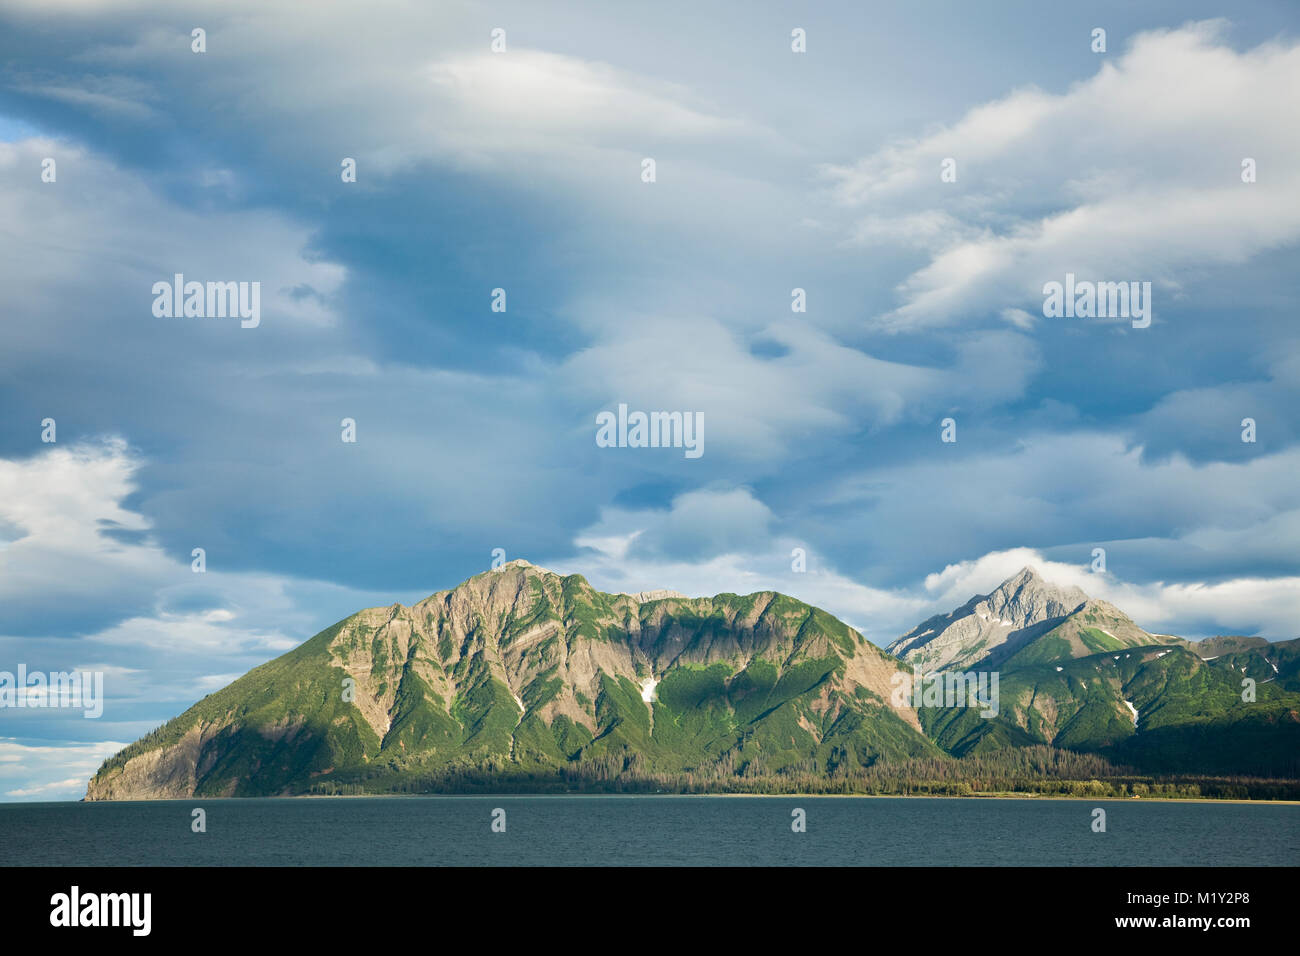 Dramatic evening light and clouds above Mount Chinitna and the Chigmit Mountains along Chinitna Bay in Lake Clark - Stock Image